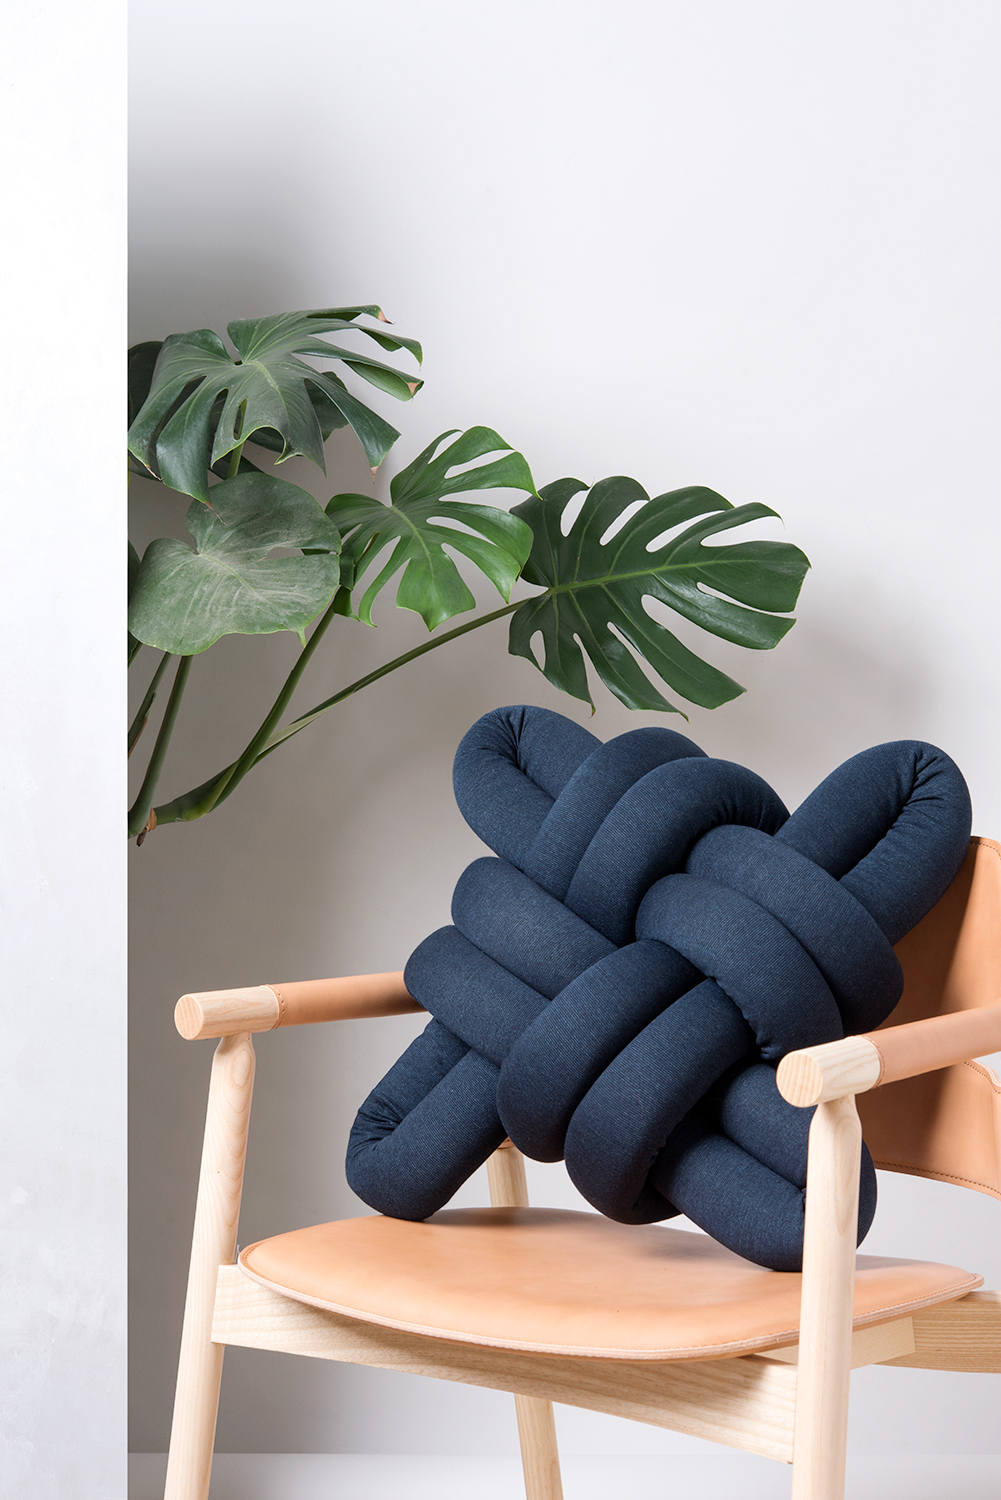 Dark Blue Knot Pillow Knot Pillows Knot Cushions Dark Etsy